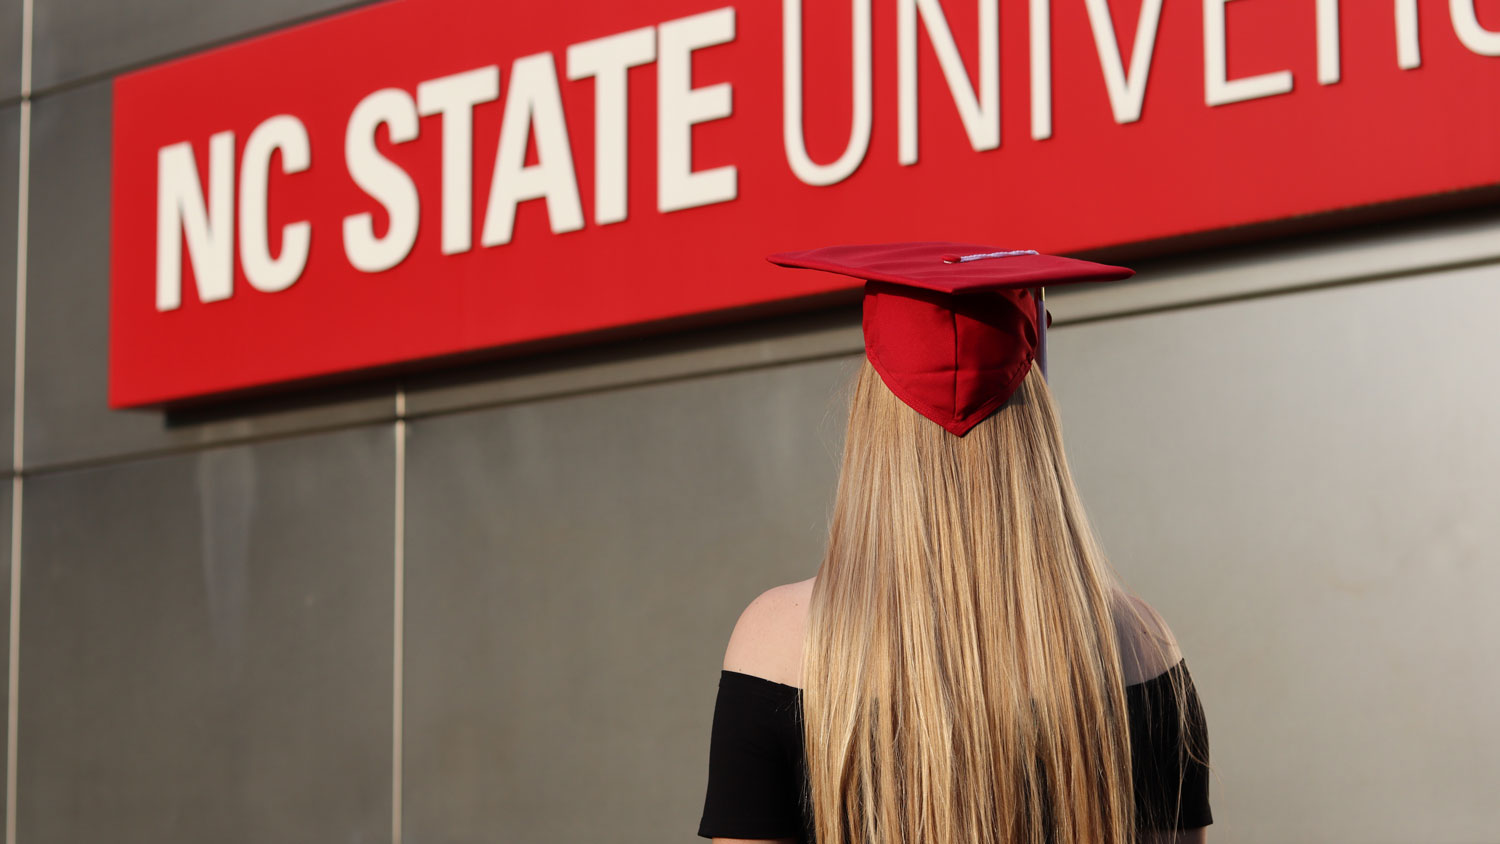 A young woman looking away wearing a red graduation cap